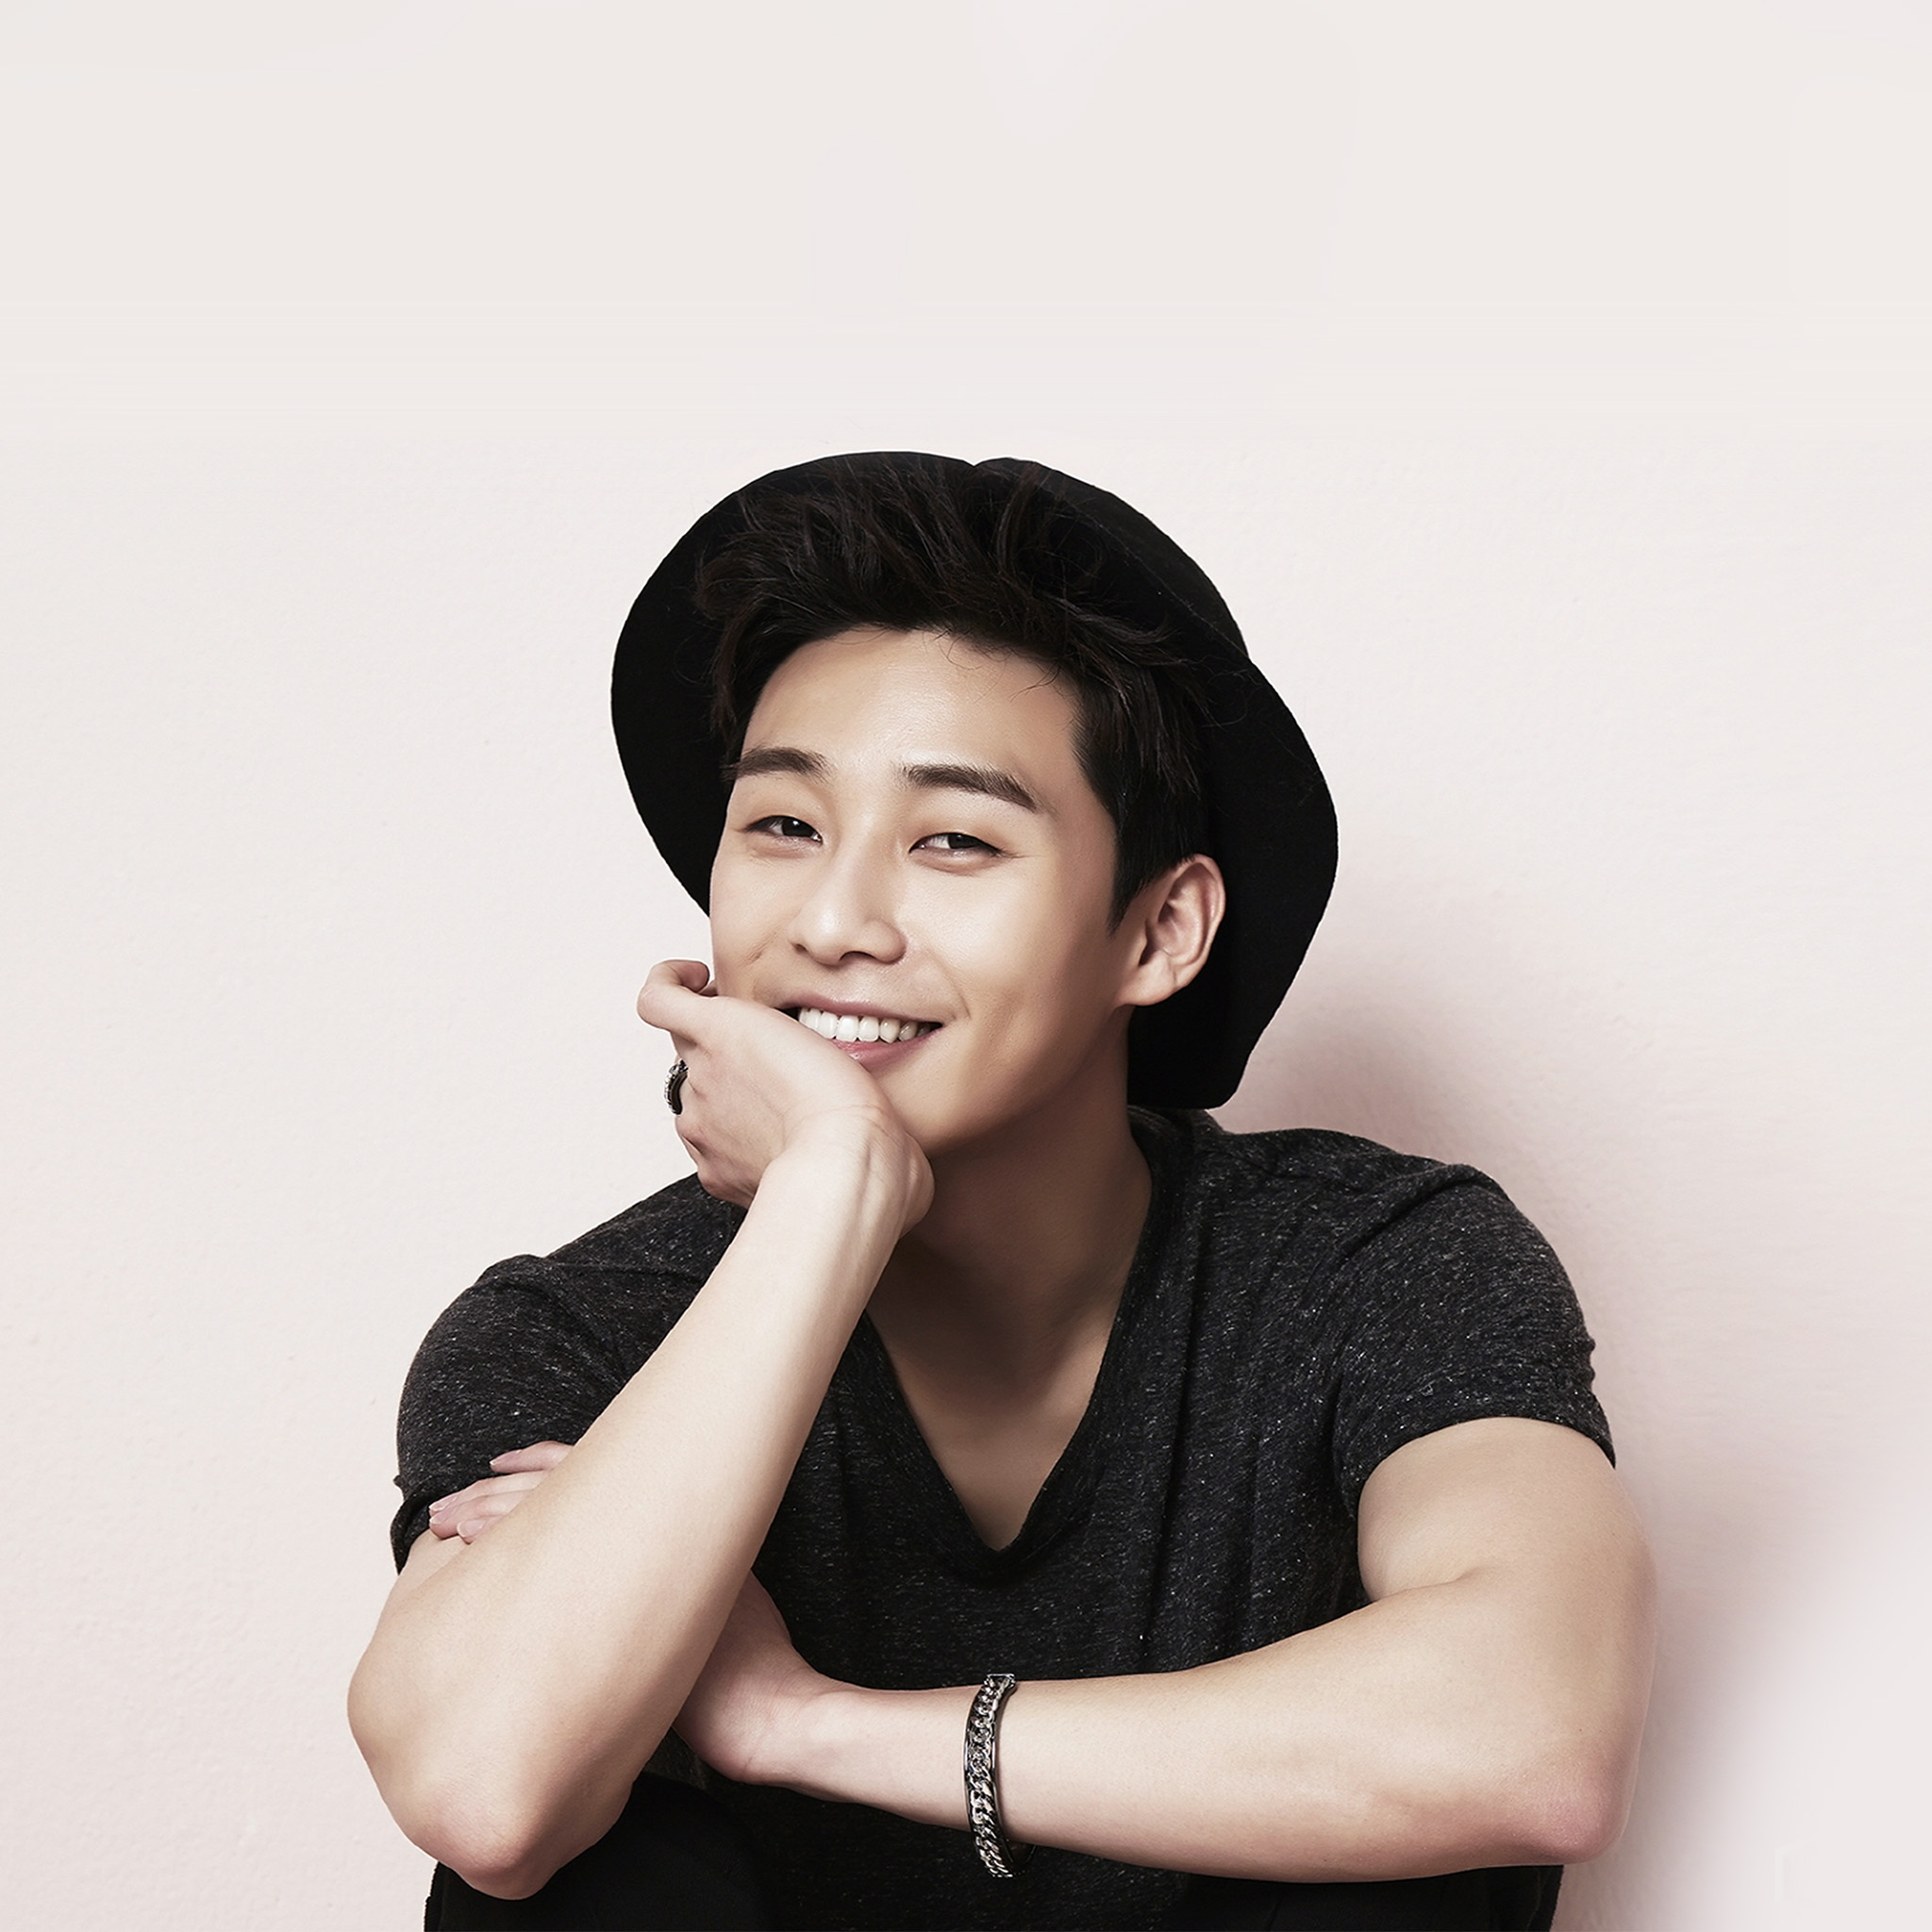 Freeios7 Hg57 Park Seo Joon Kpop Handsome Cool Guy Parallax Hd Iphone Ipad Wallpaper